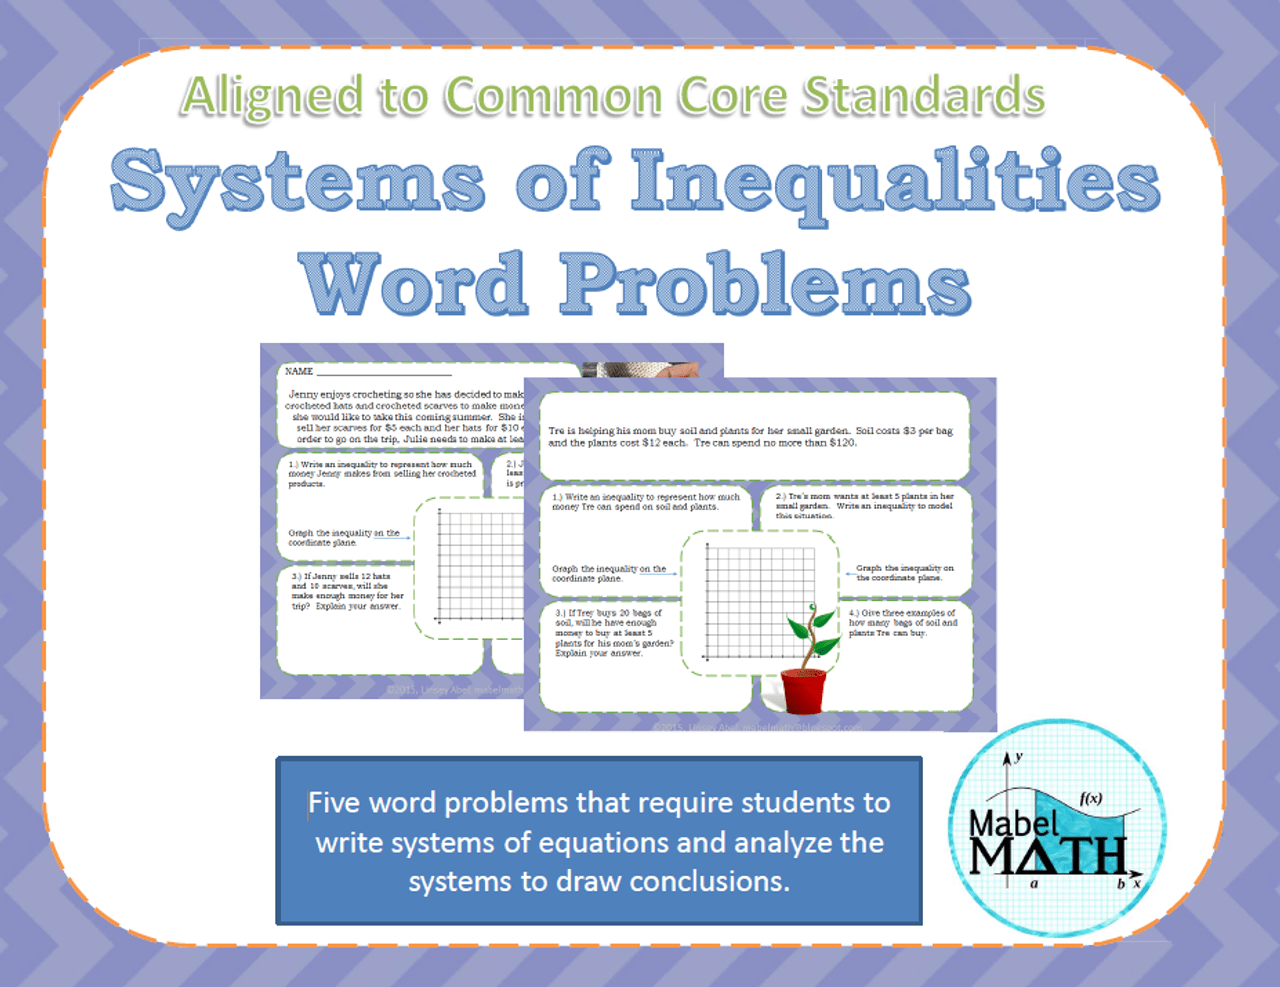 hight resolution of Systems of Inequalities Word Problems - Amped Up Learning